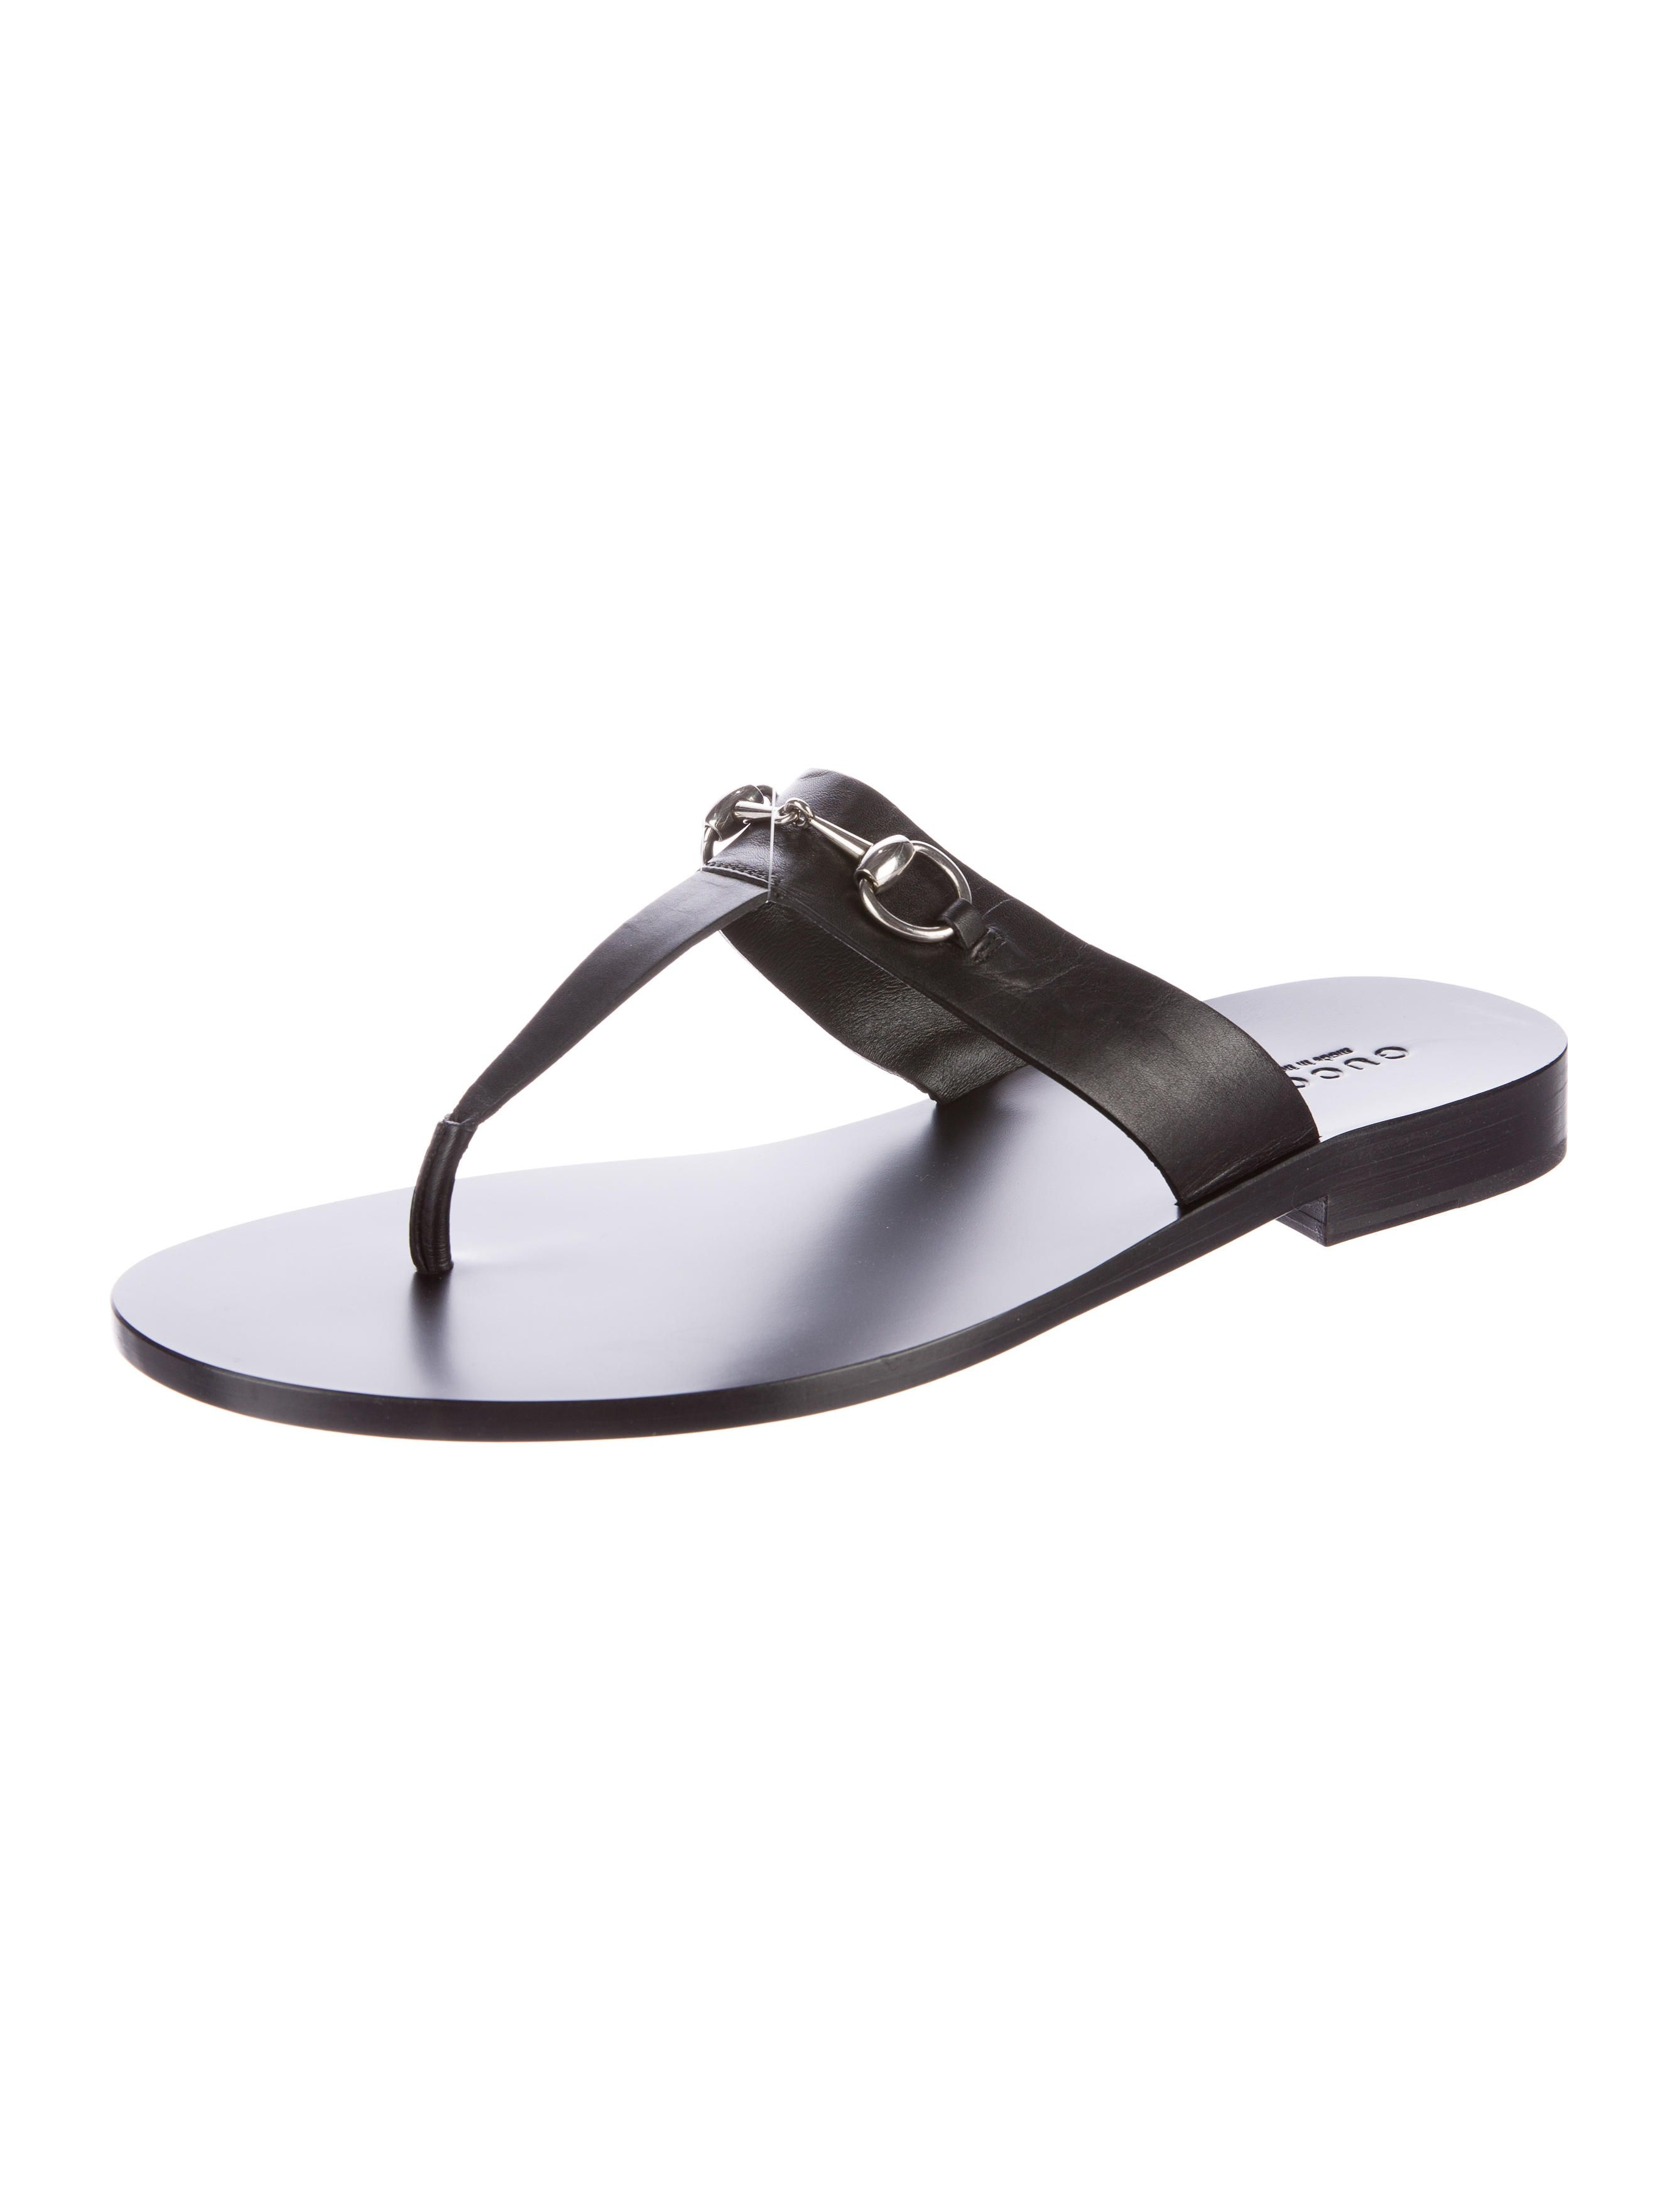 39acd862c Horsebit Thong Sandals w  Tags in 2019